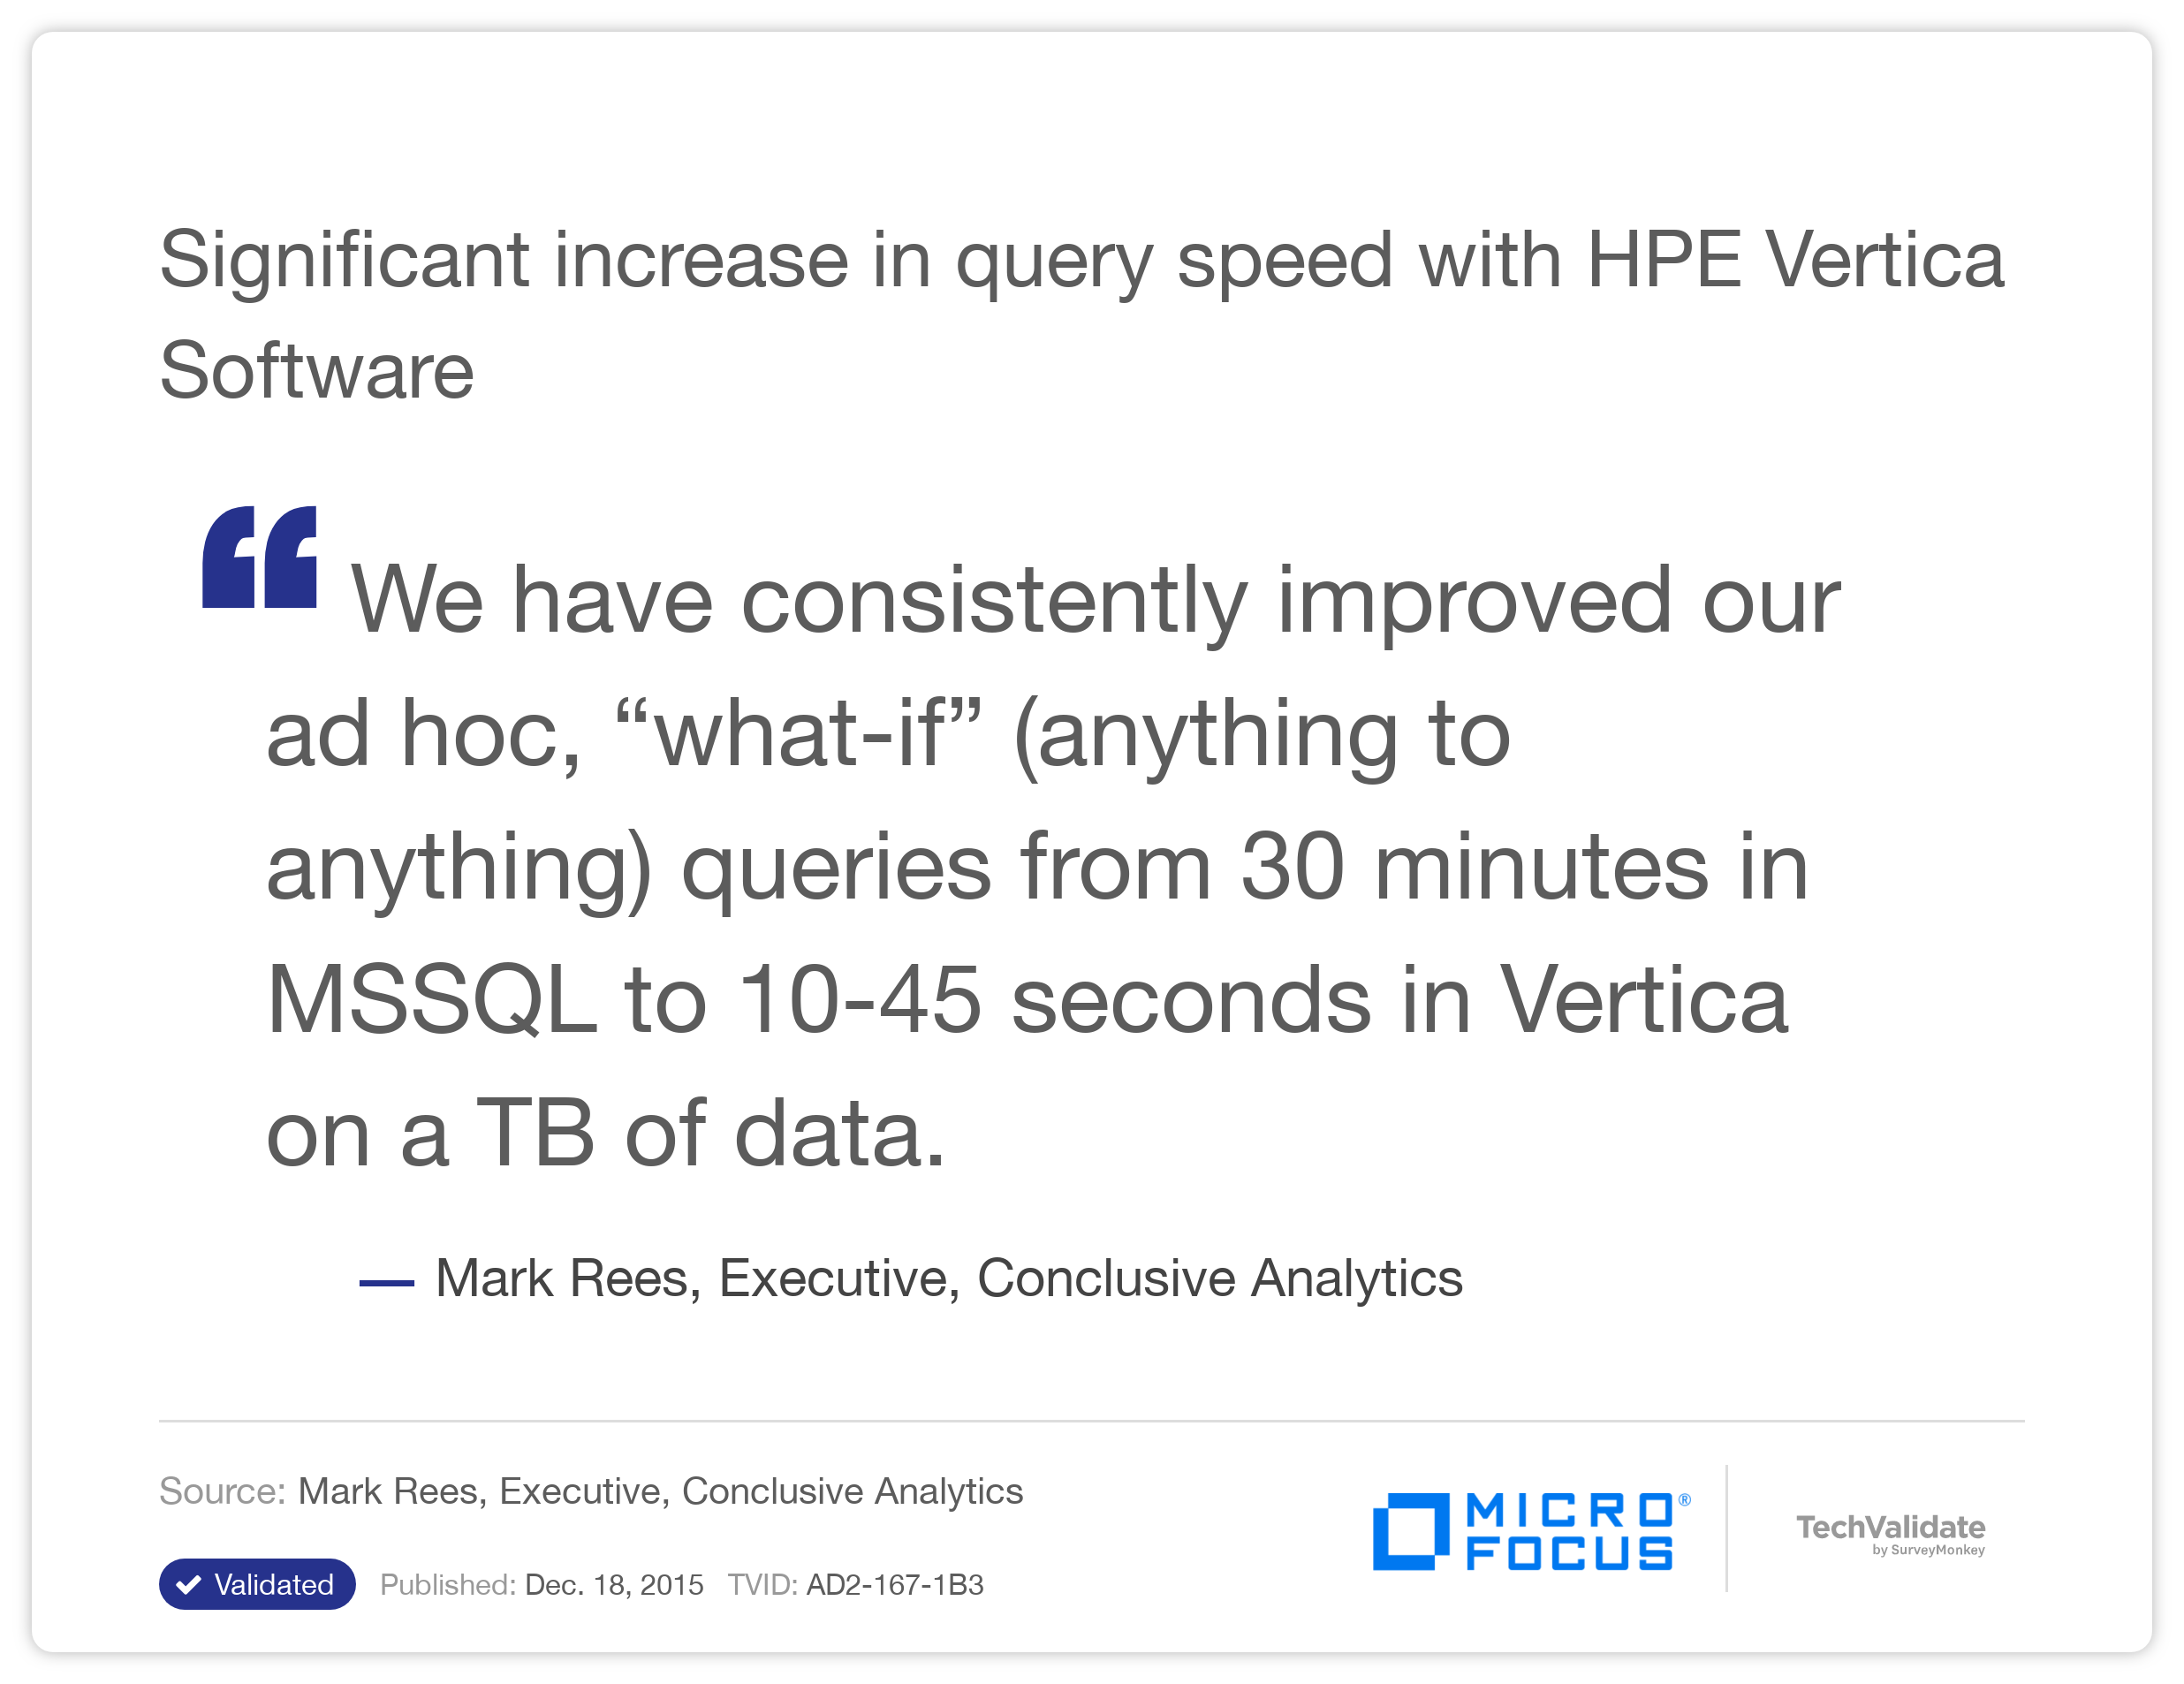 Significant increase in query speed with HP Vertica Software